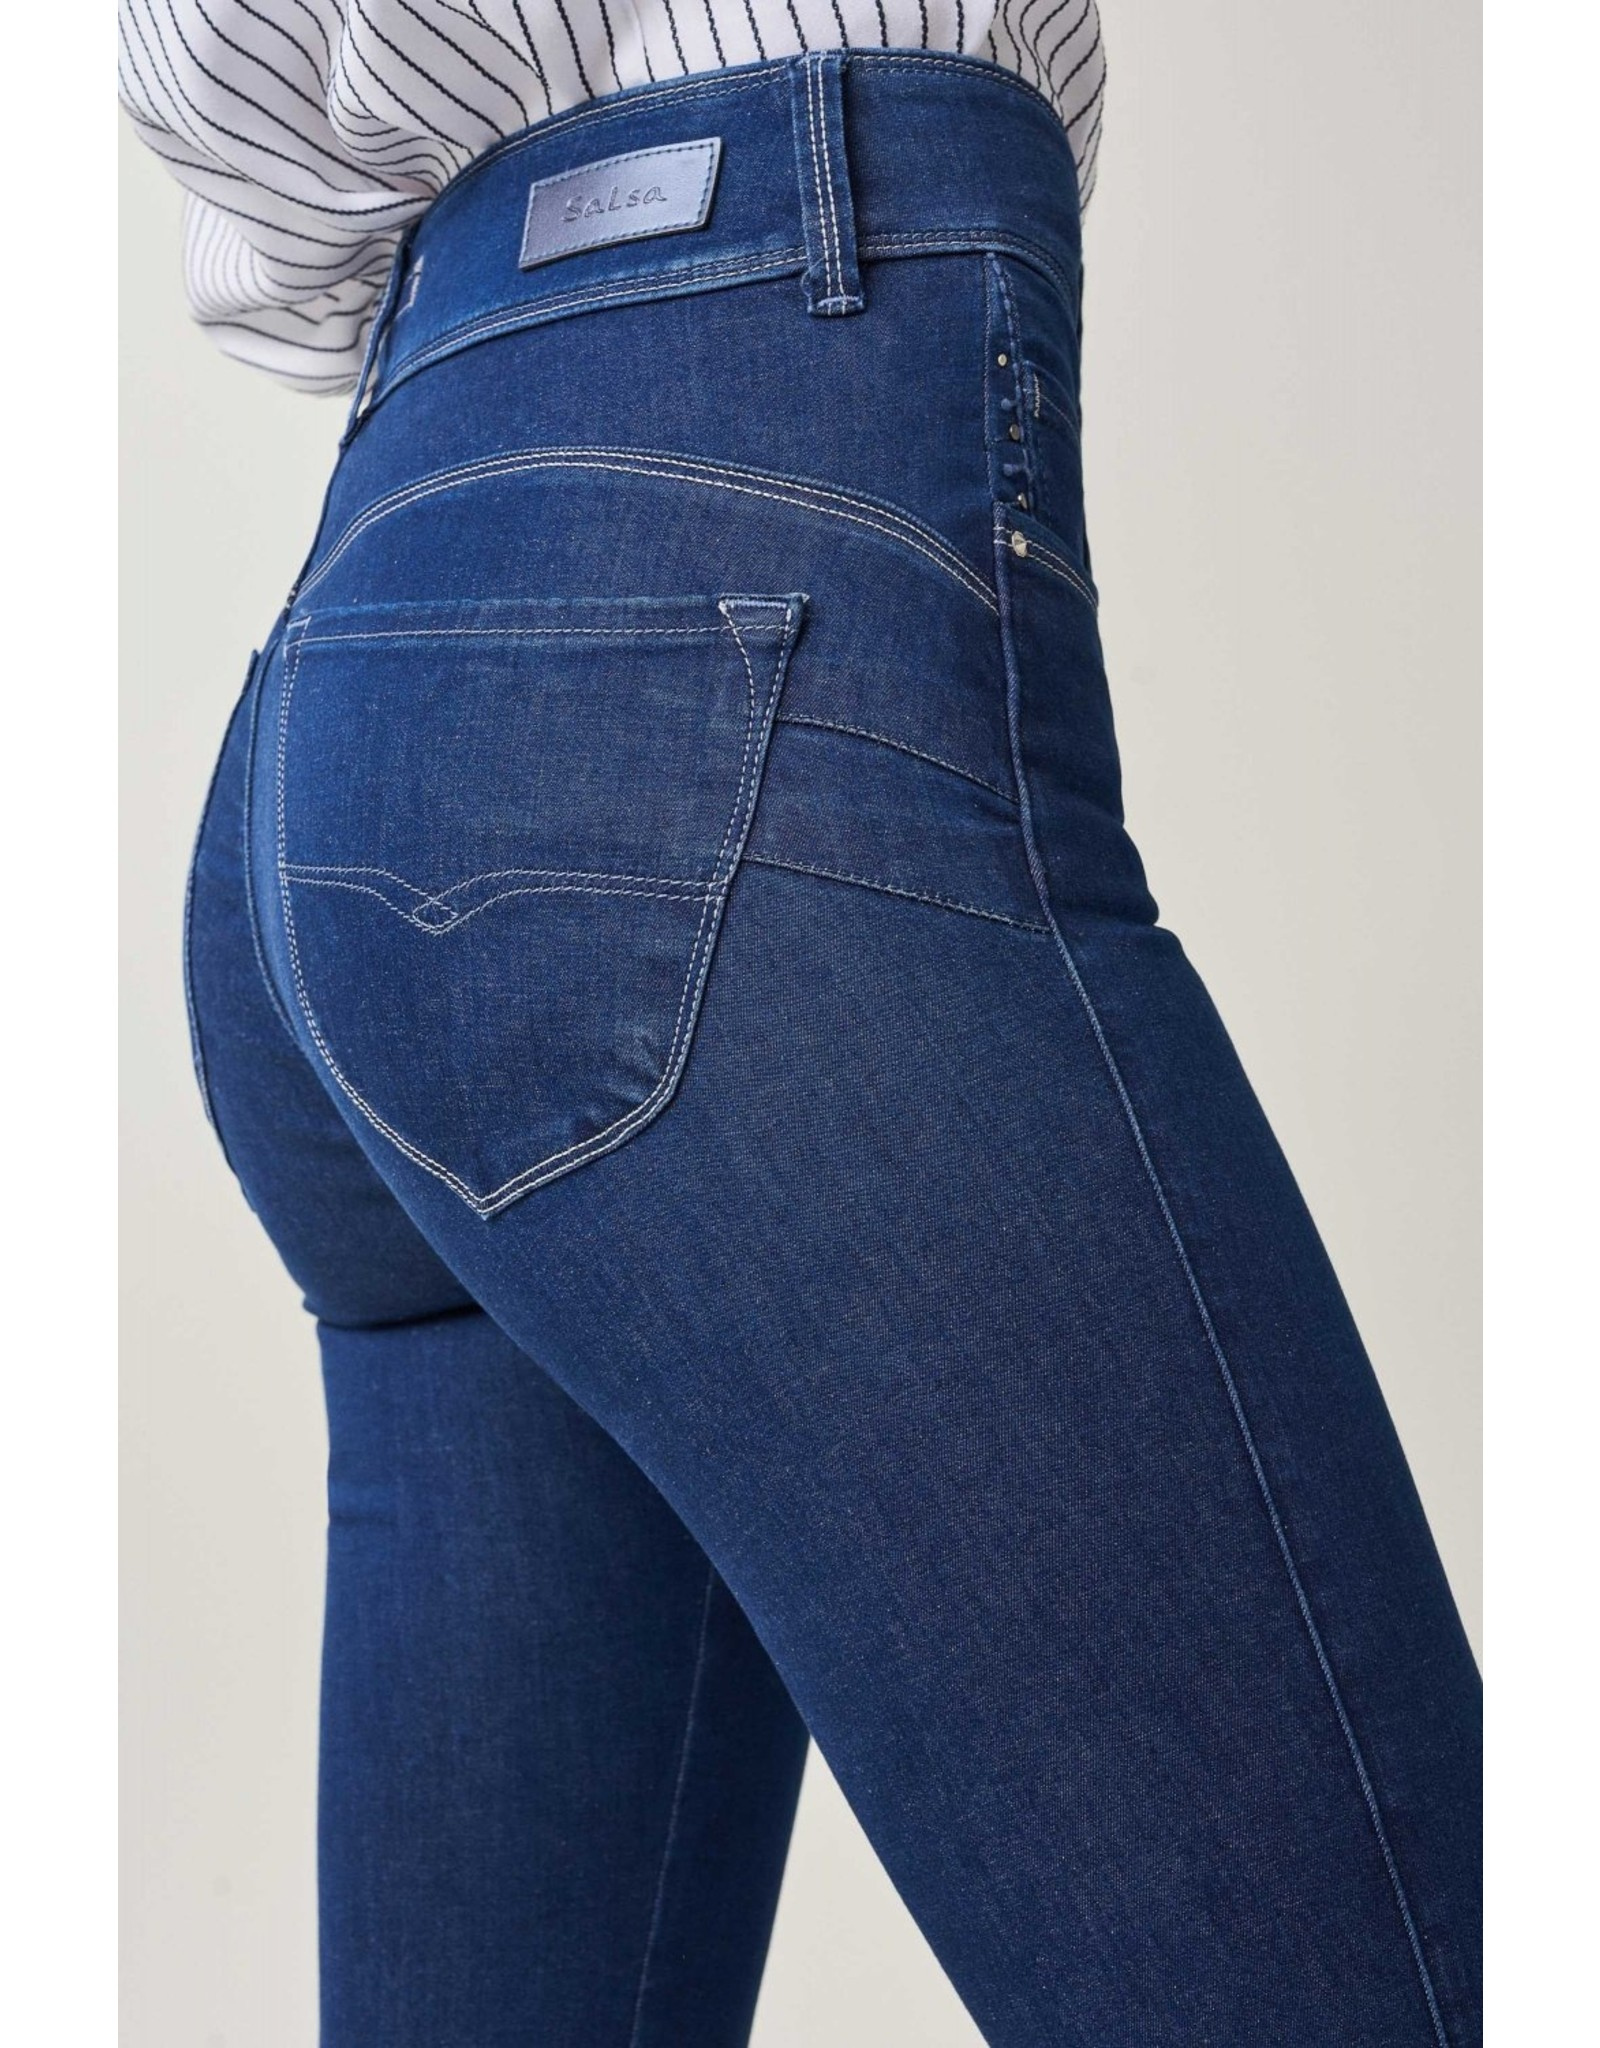 Salsa 125656 -Push In Secret Capri Jeans With Embroidery On The Hem